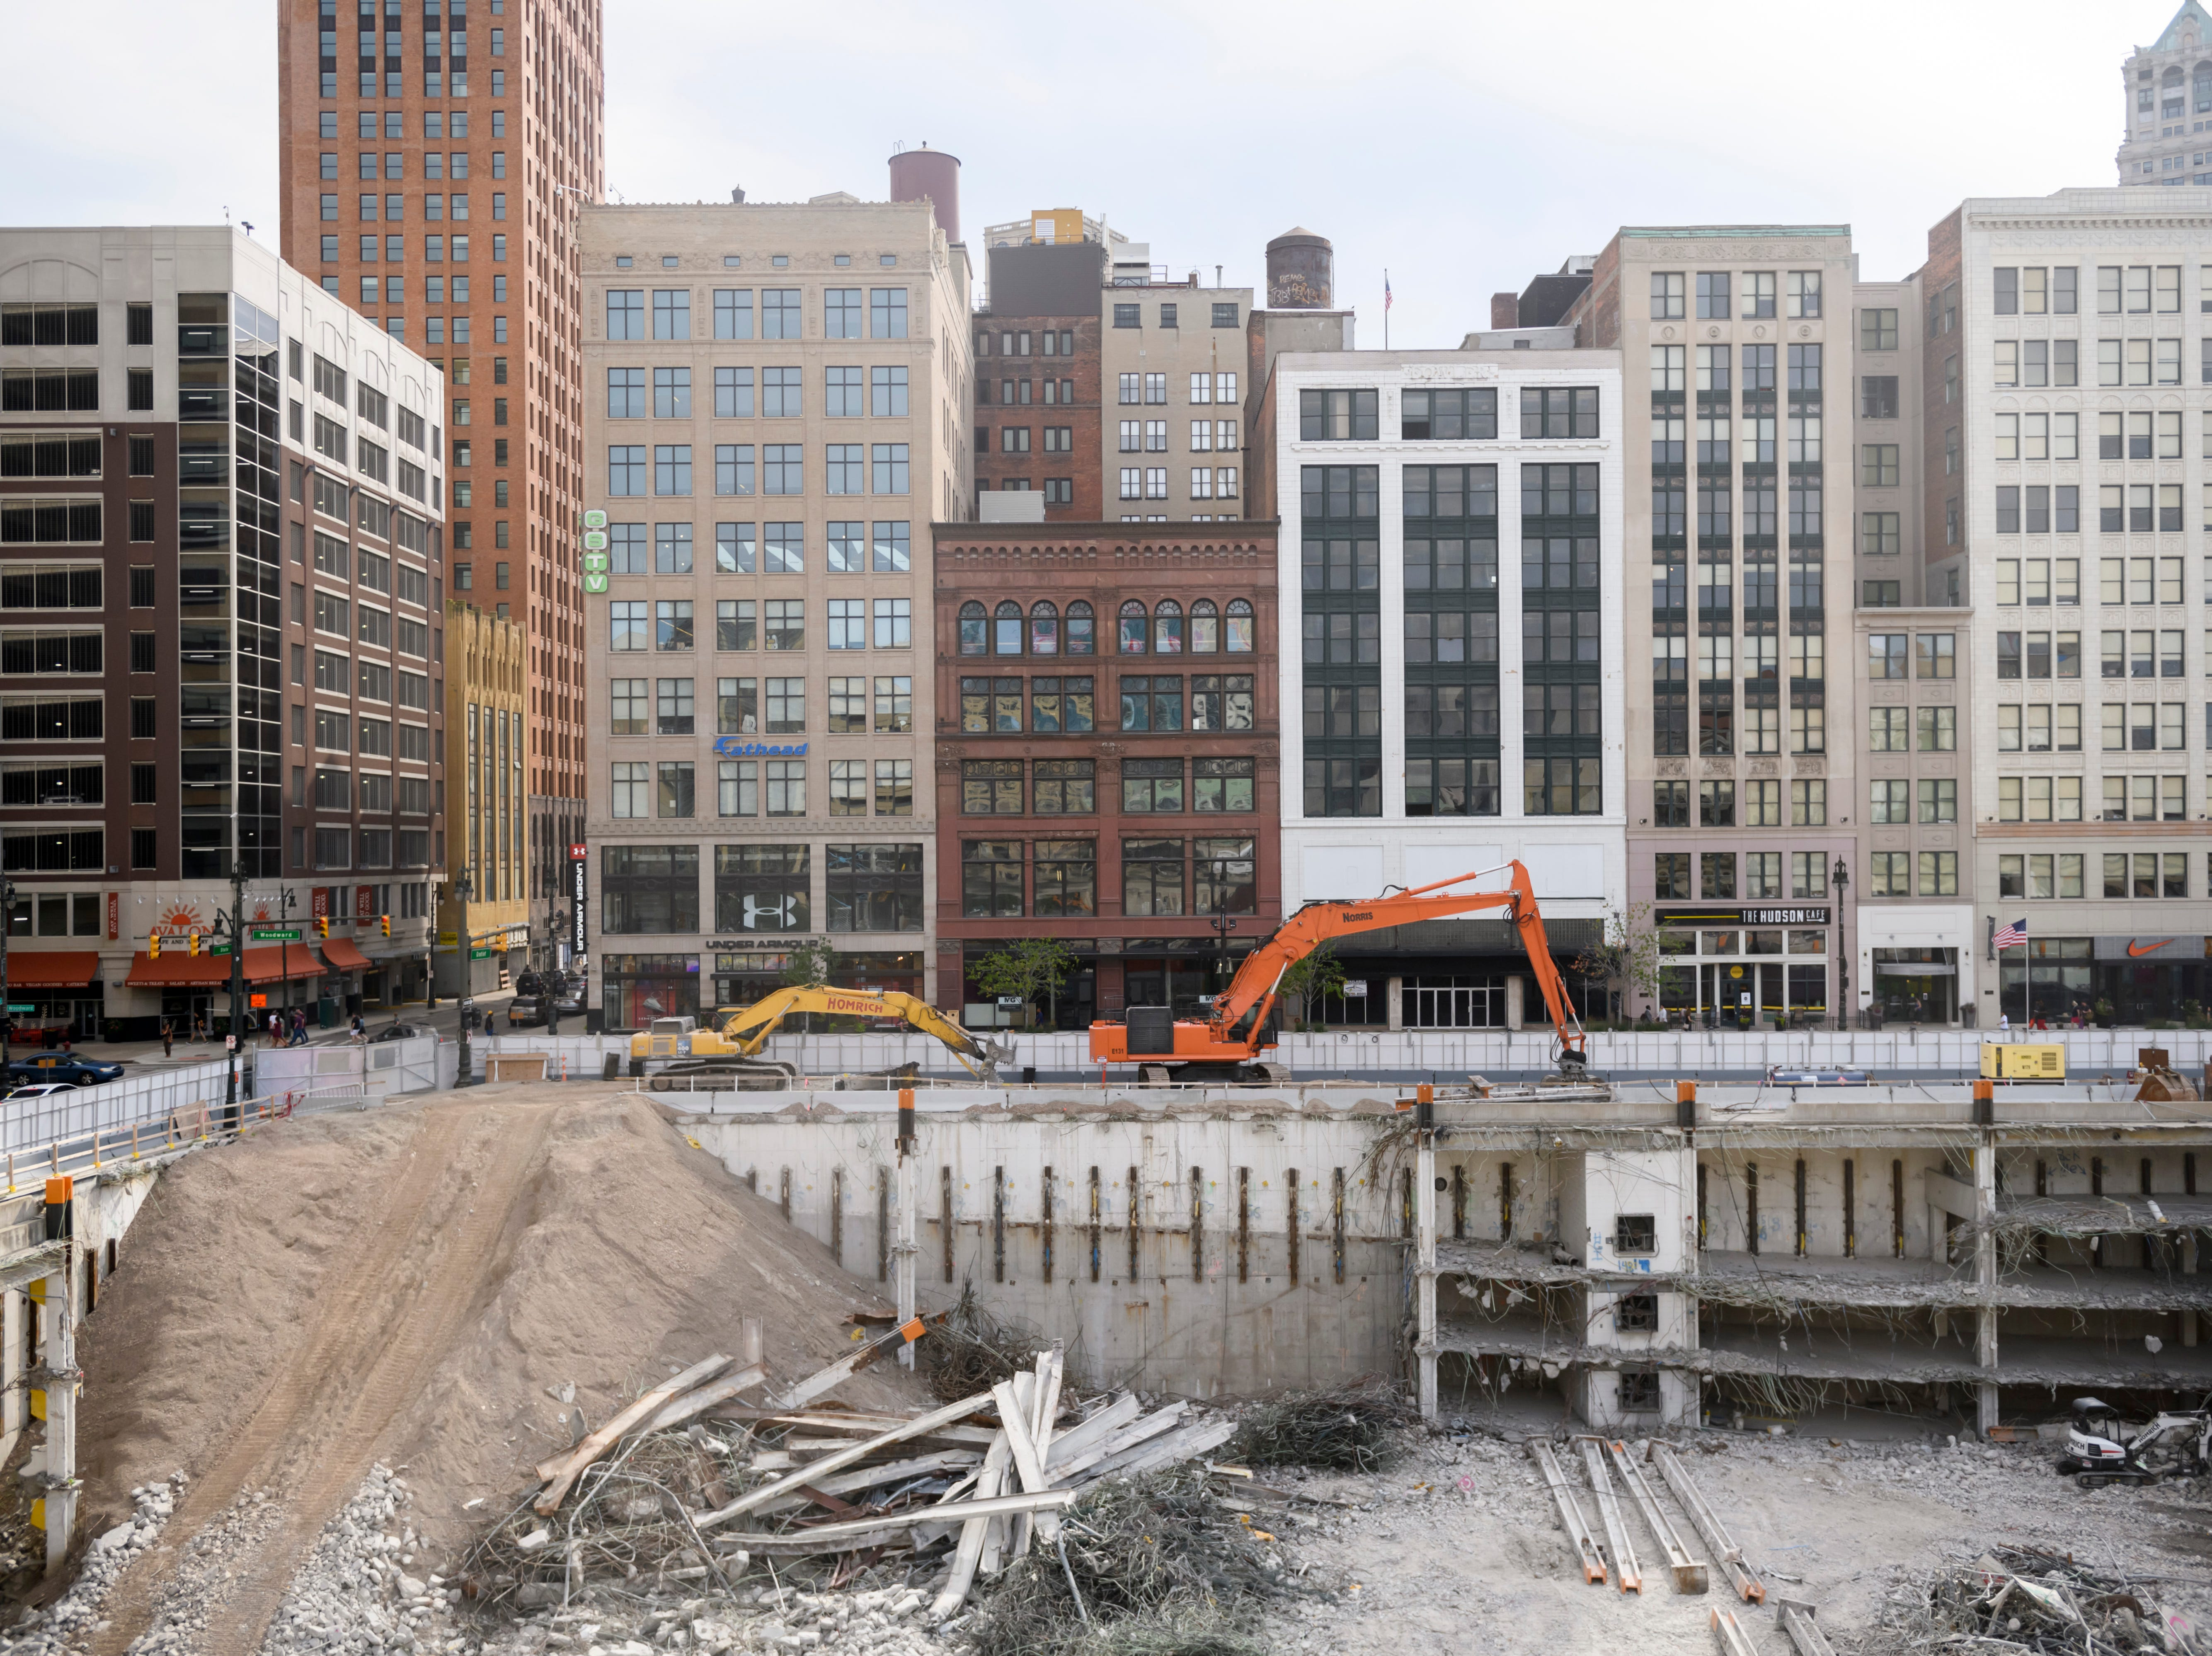 Excavation crews work on clearing out the remains of the former Hudson's building on Woodward Avenue in Detroit on July 12, 2018.